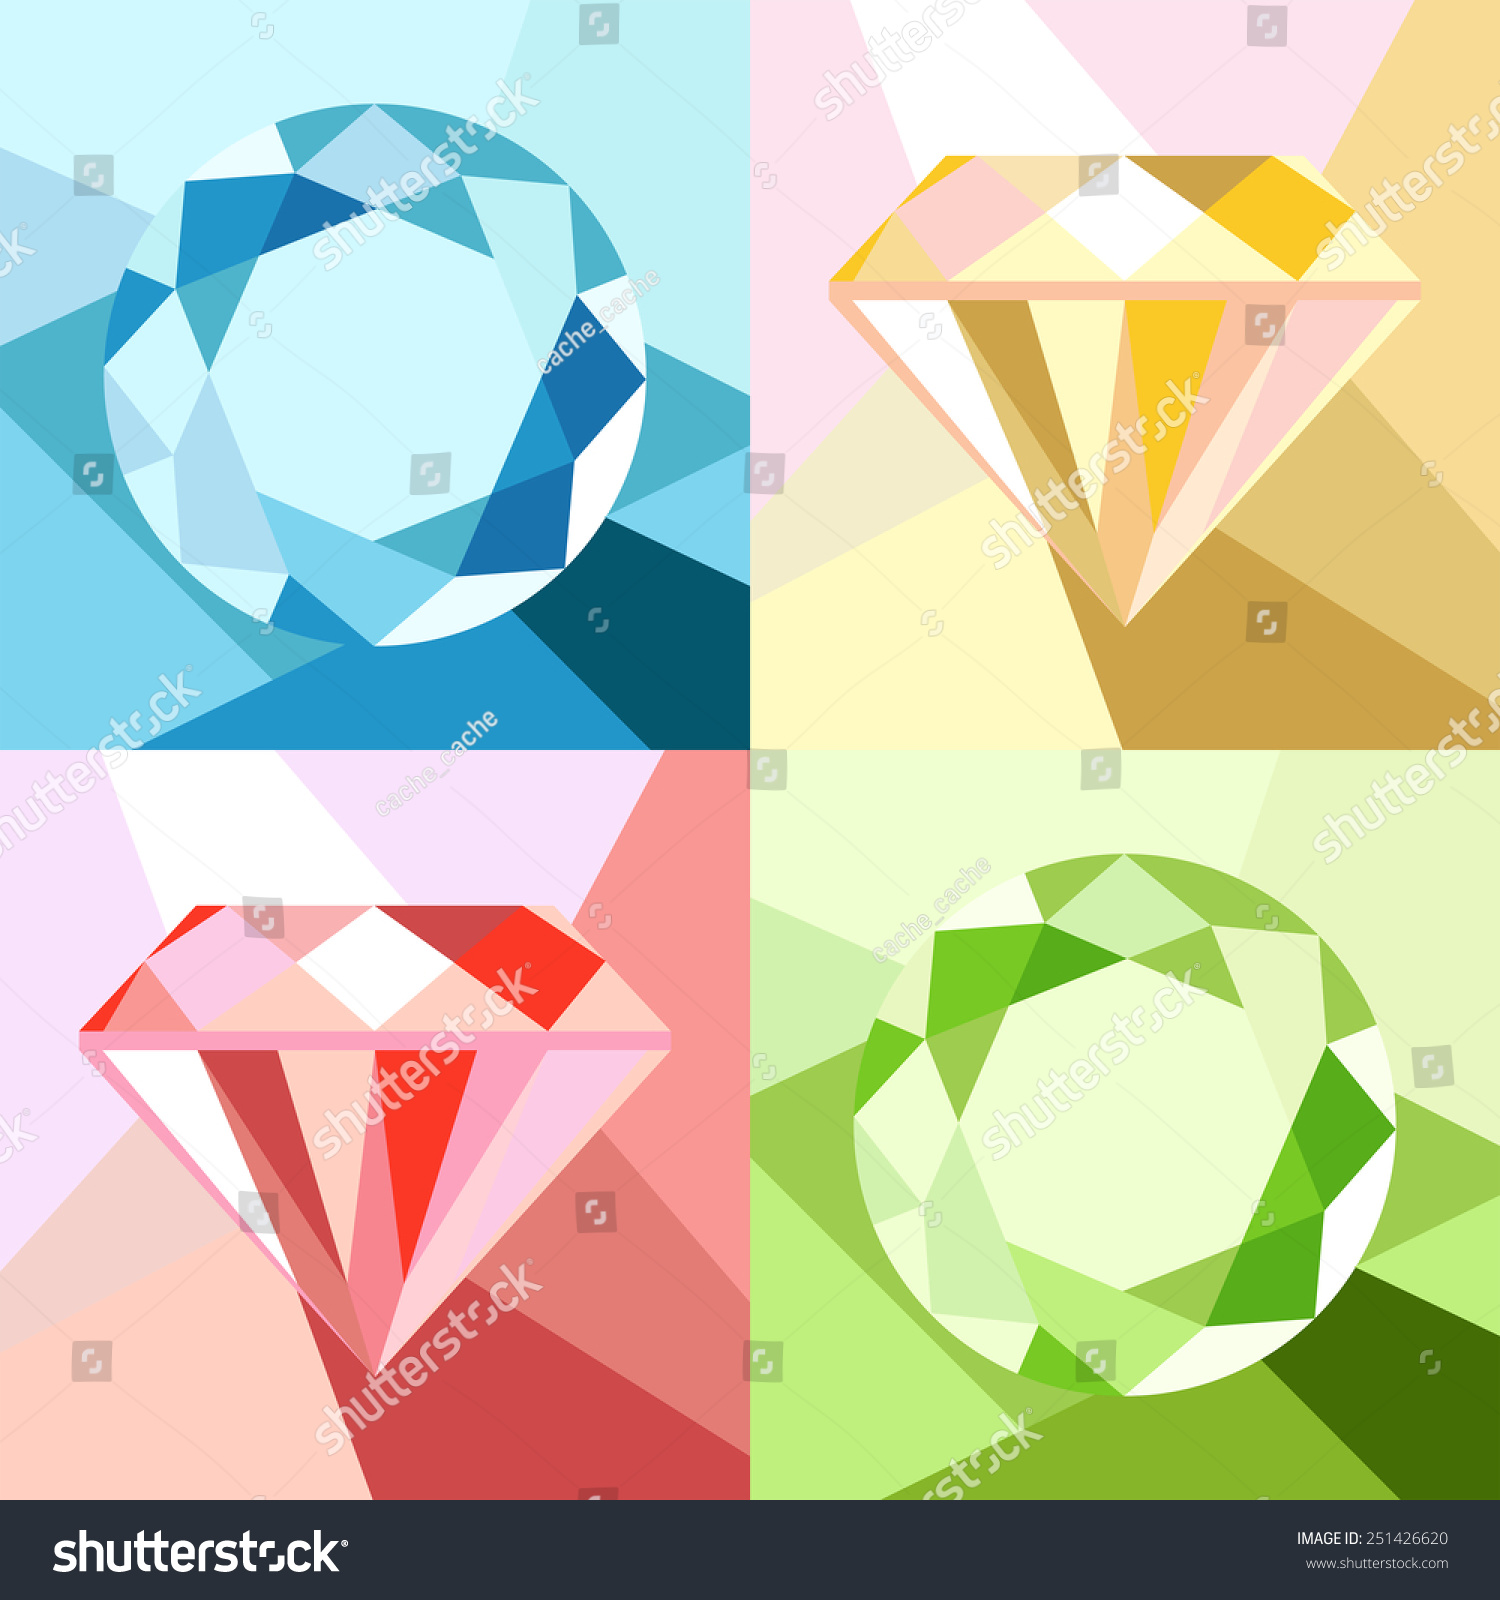 polygon art diamond geometric clip background pink